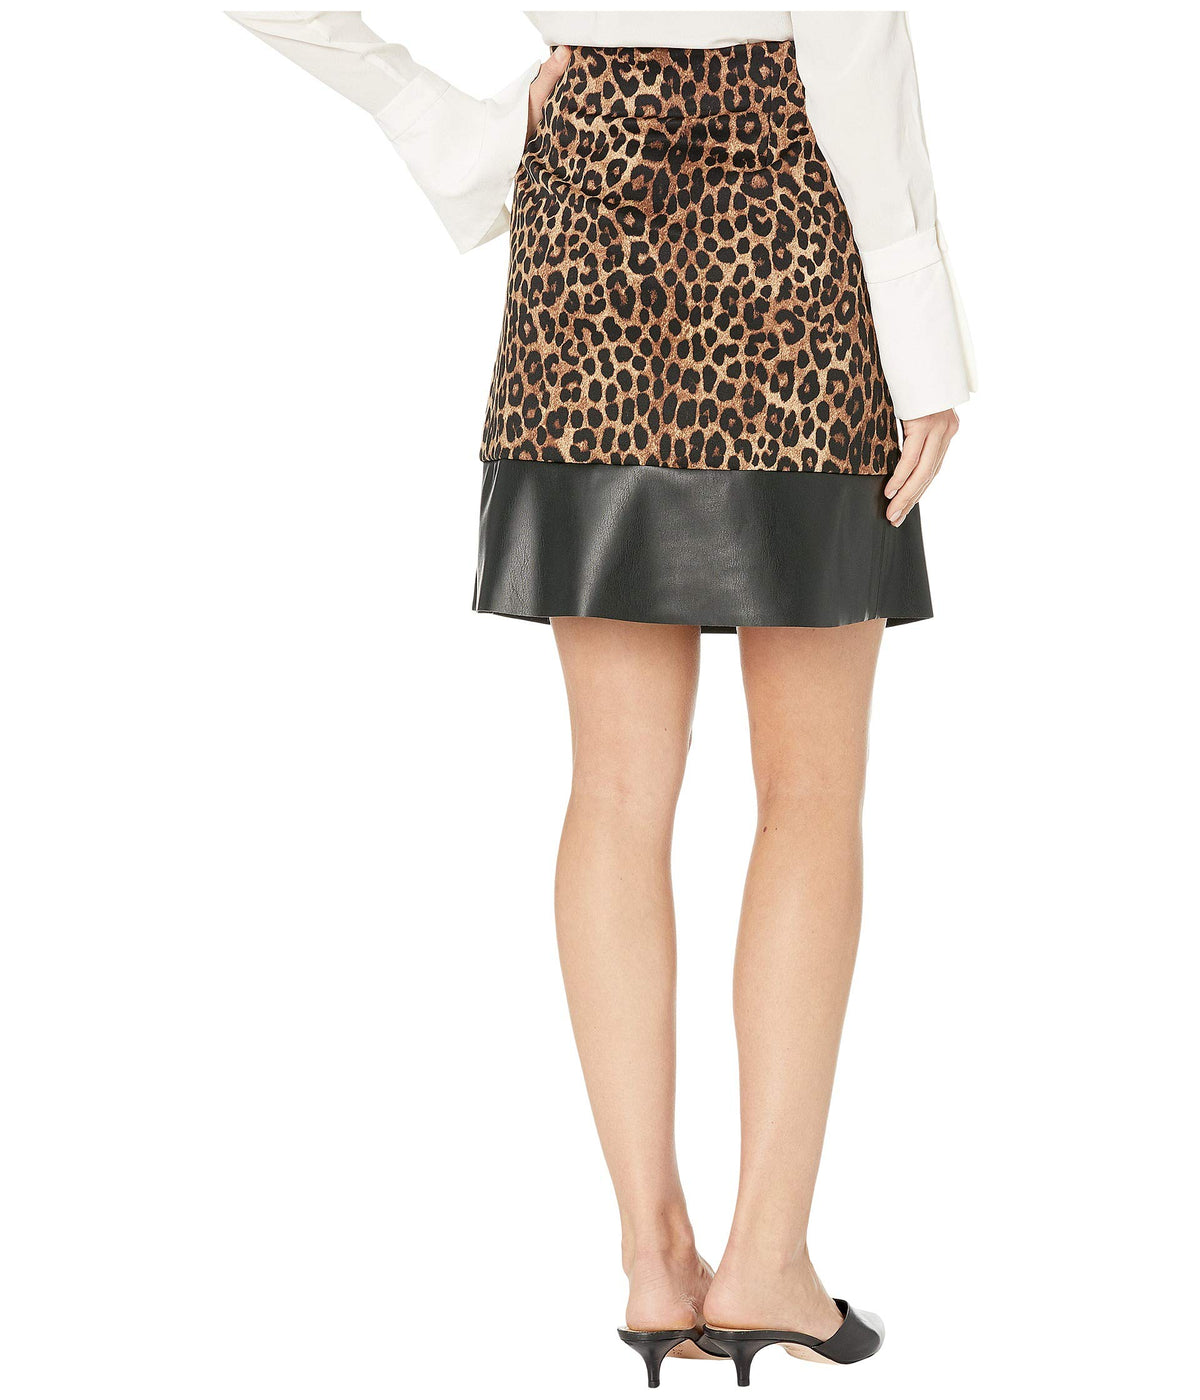 Cheetah Leather Mini Skirt